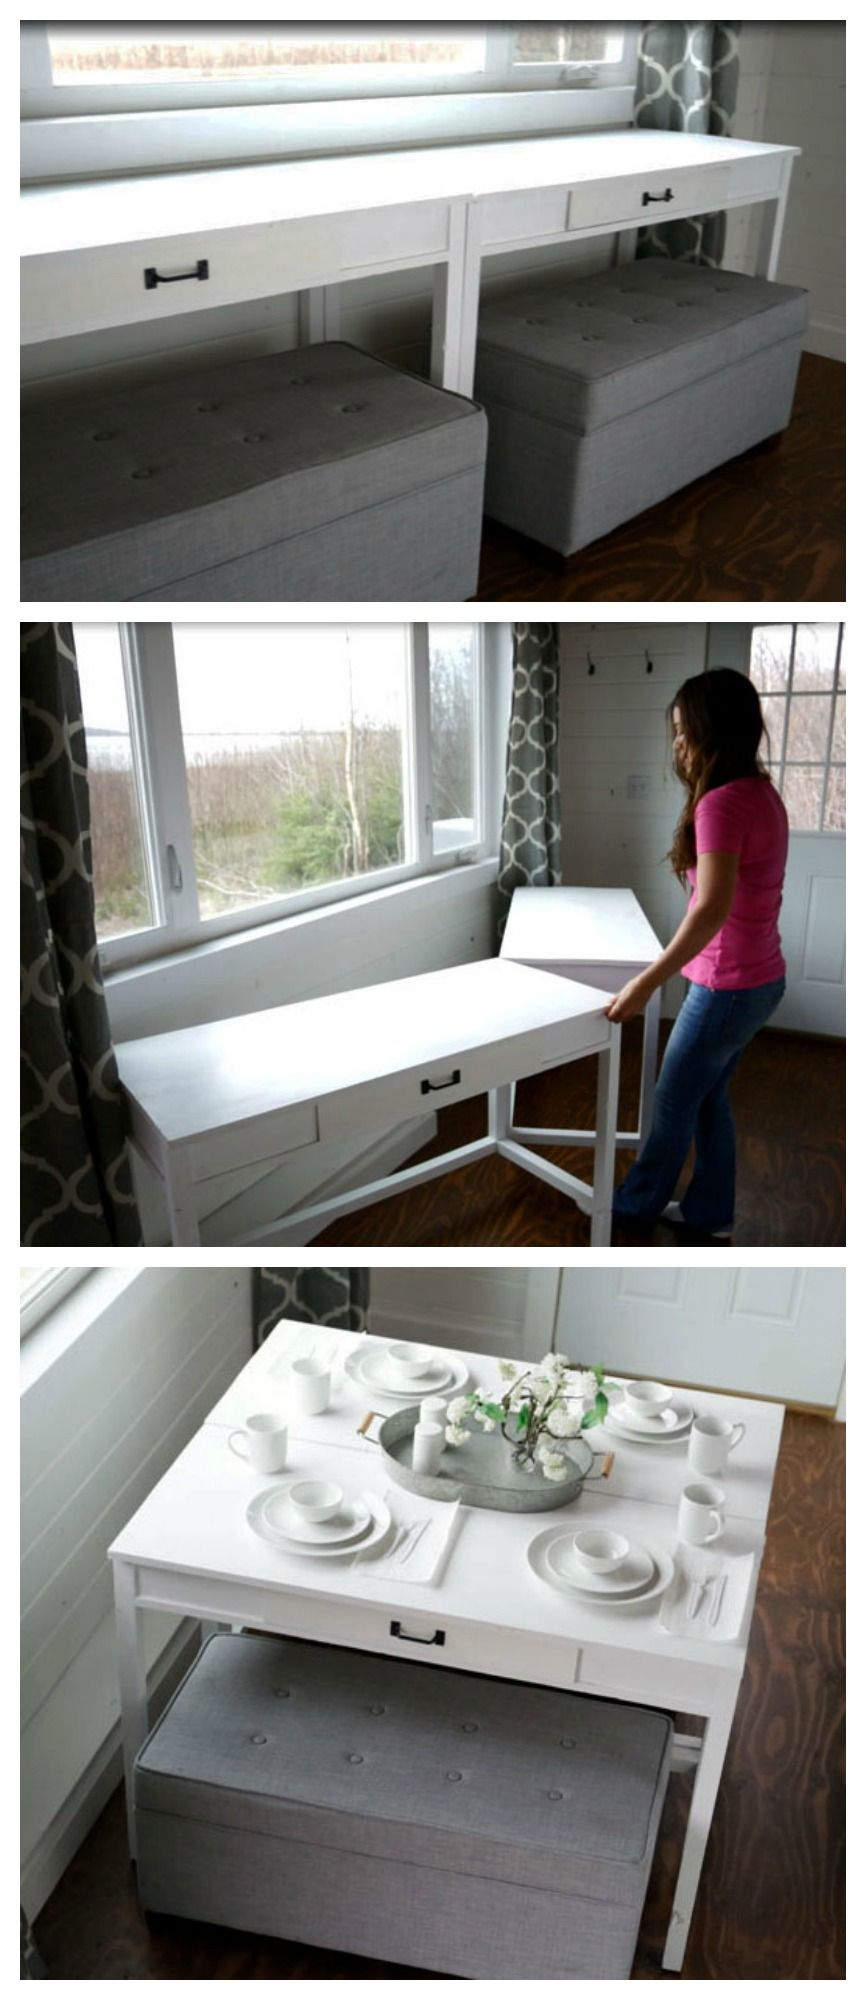 Space Saver: DIY Convertible Desk for Tiny House => http://coolcreativity.com/handcraft/diy-convertible-desk-space-saving-idea/  #Desk #Convertible #Small #Room                                                                                                                                                     More